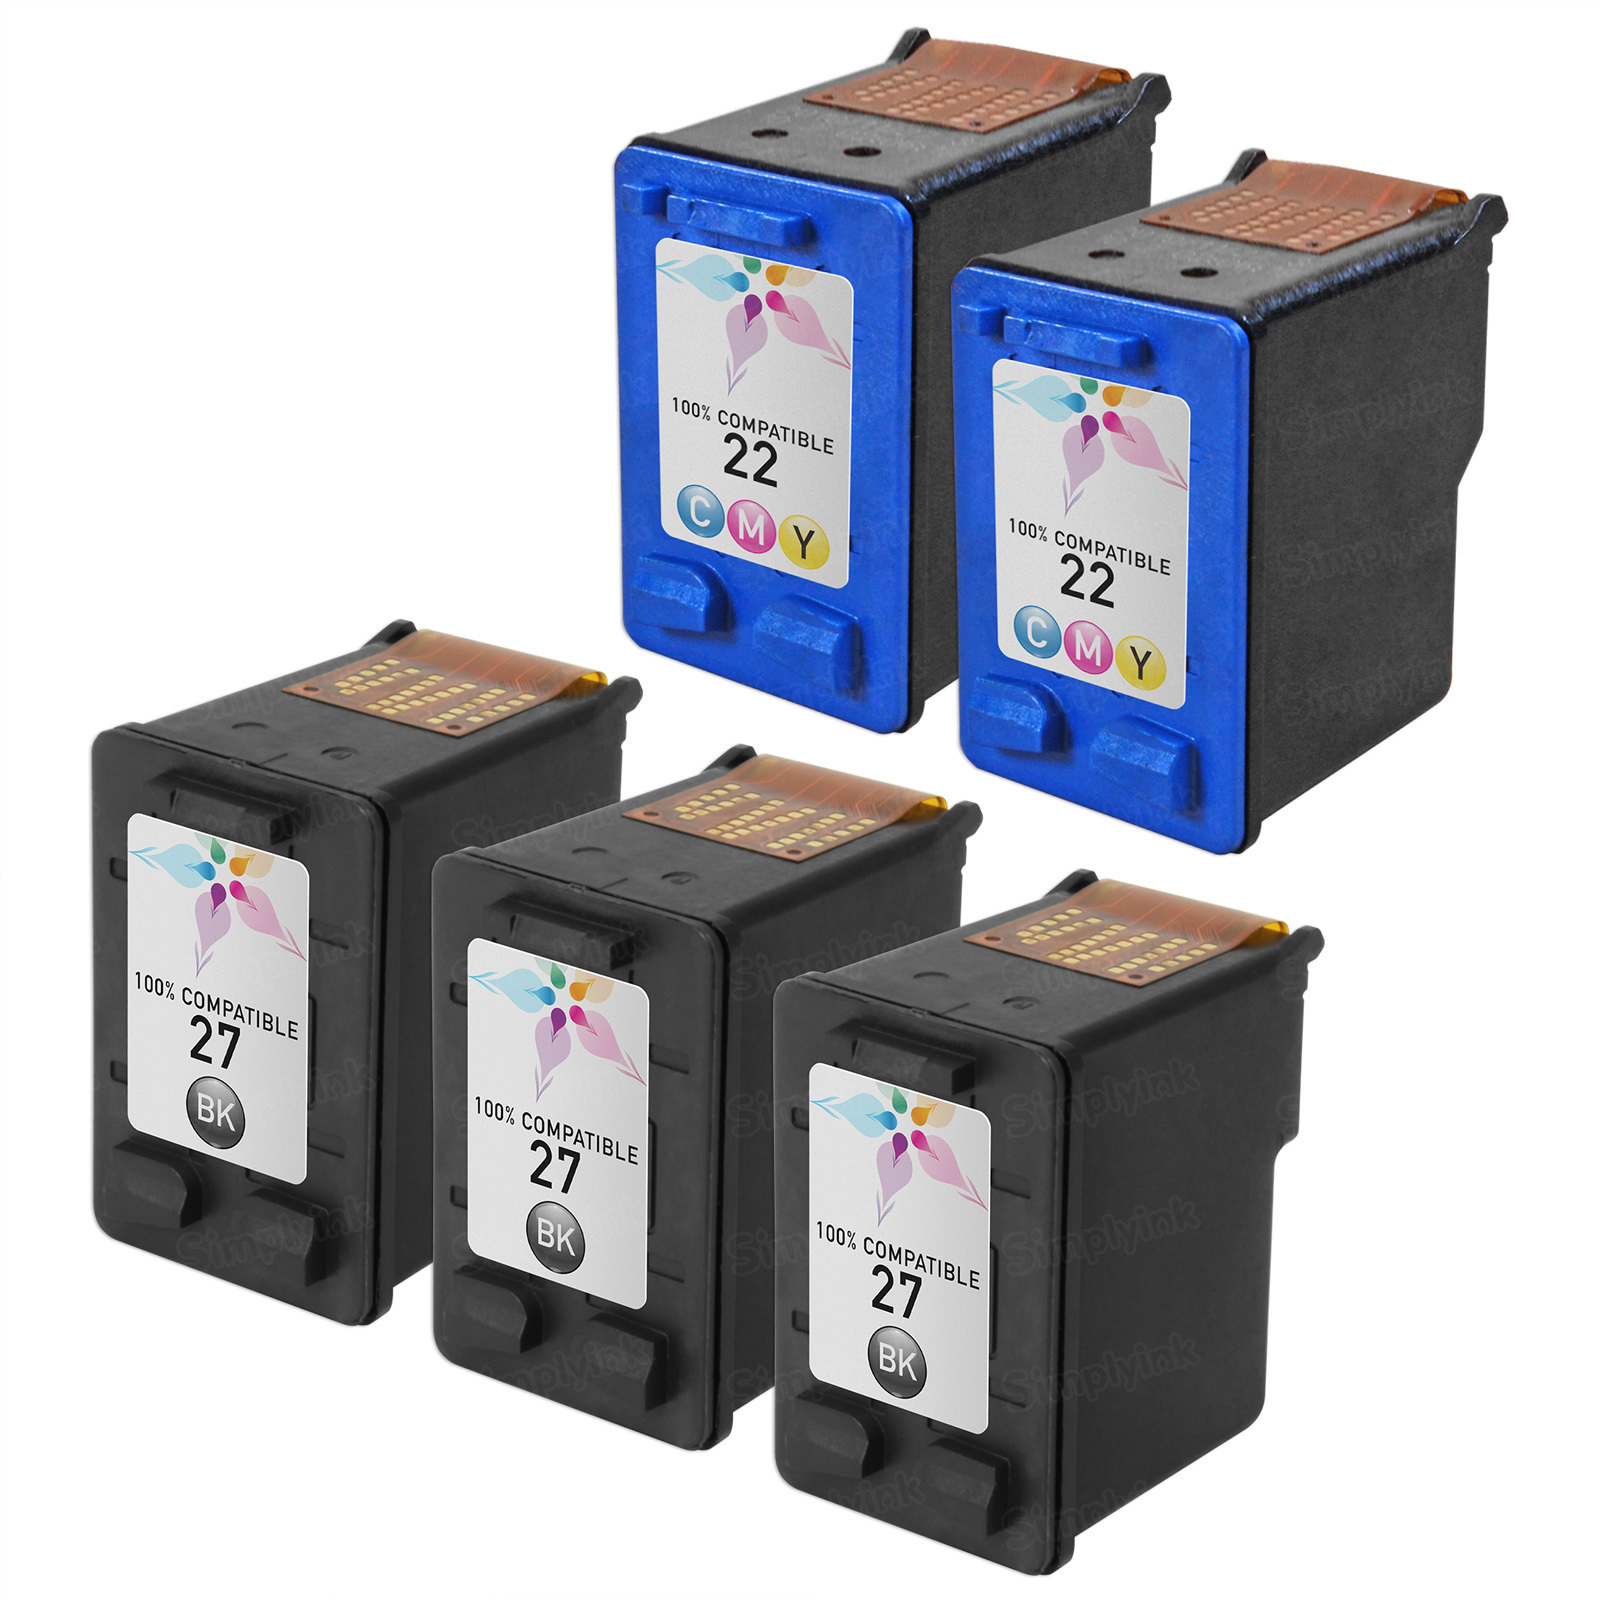 Remanufactured Bulk Set of 5 Ink Cartridges to Replace HP 27 & HP 22 (3 BK, 2 CLR)